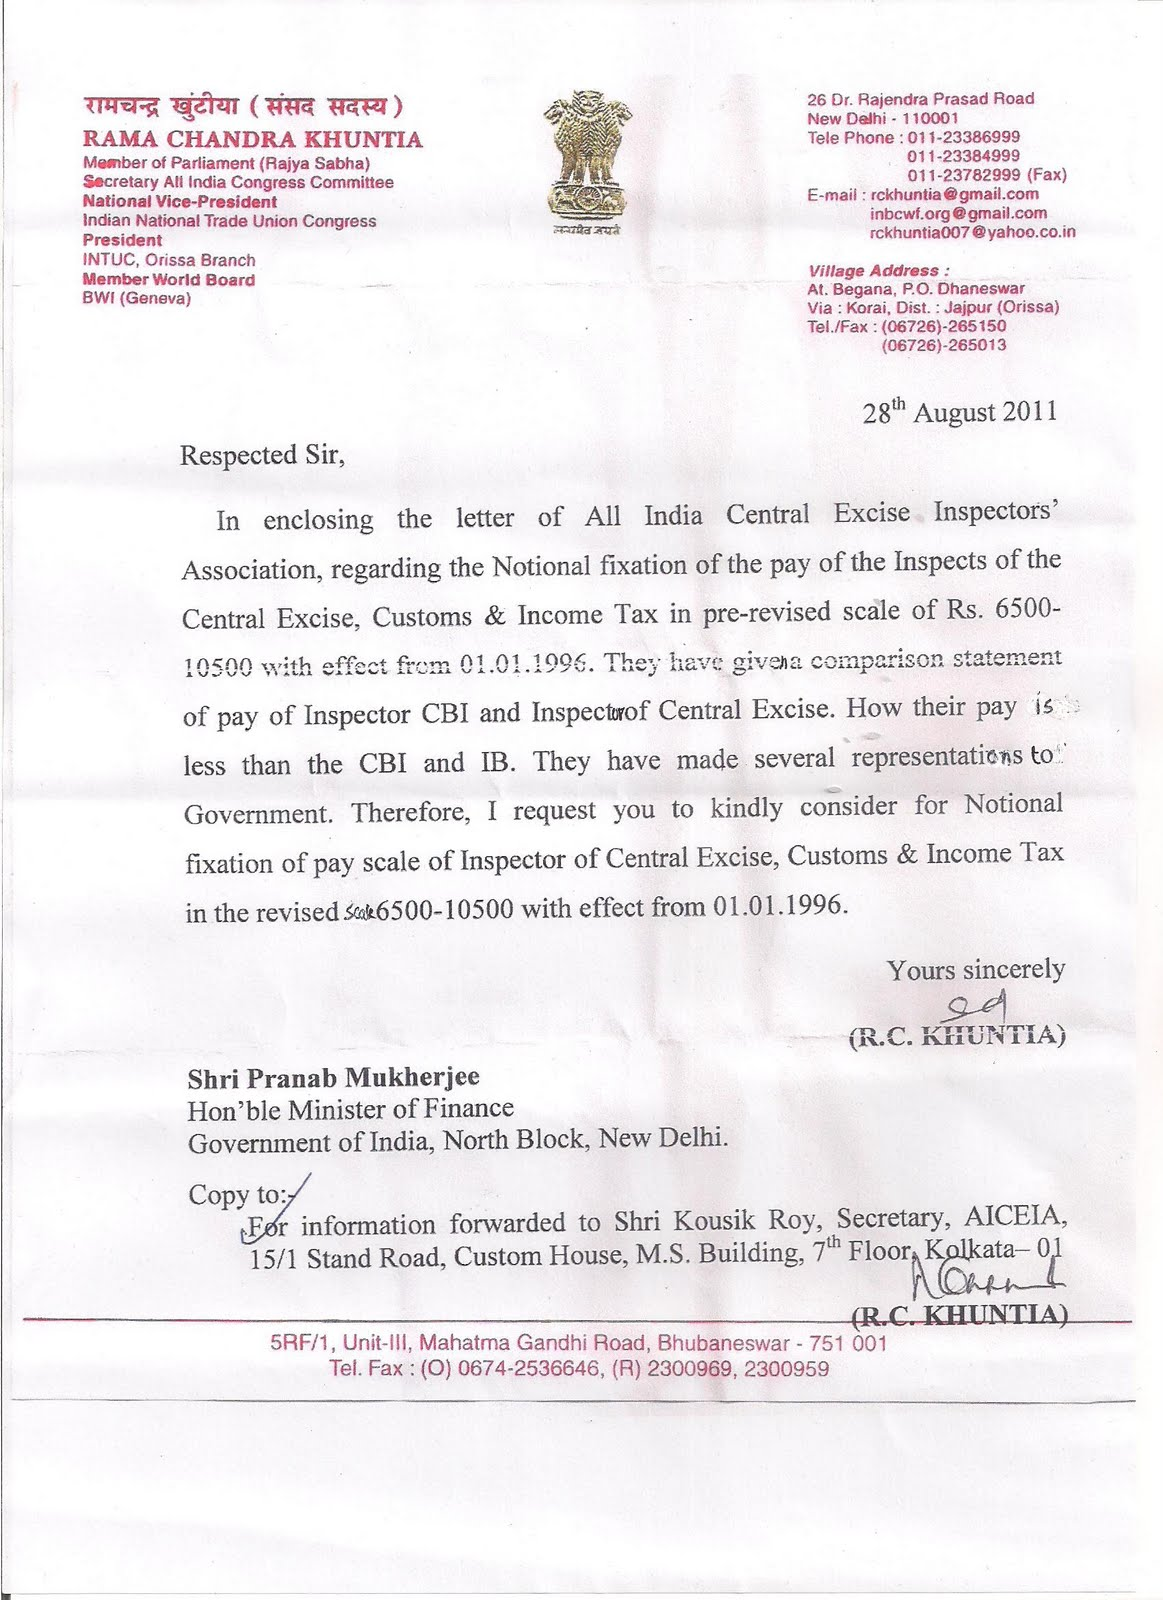 Home Office Irs Letter From Rama Chandra Khuntia All India Central